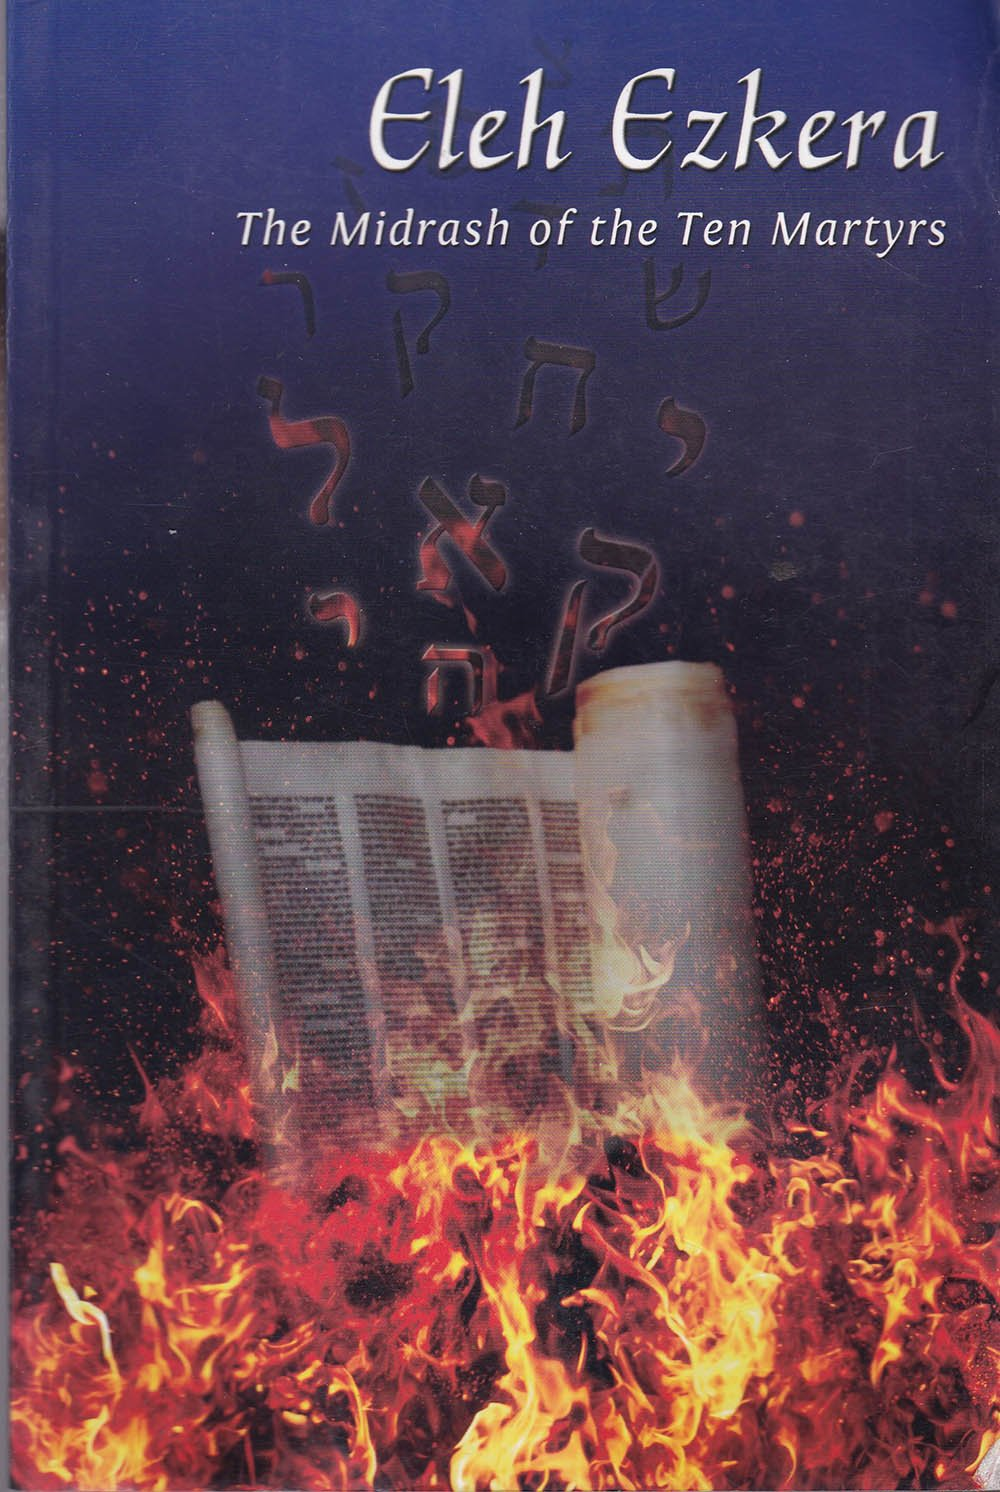 Eleh Ezkera: The Midrash of the Ten Martyrs